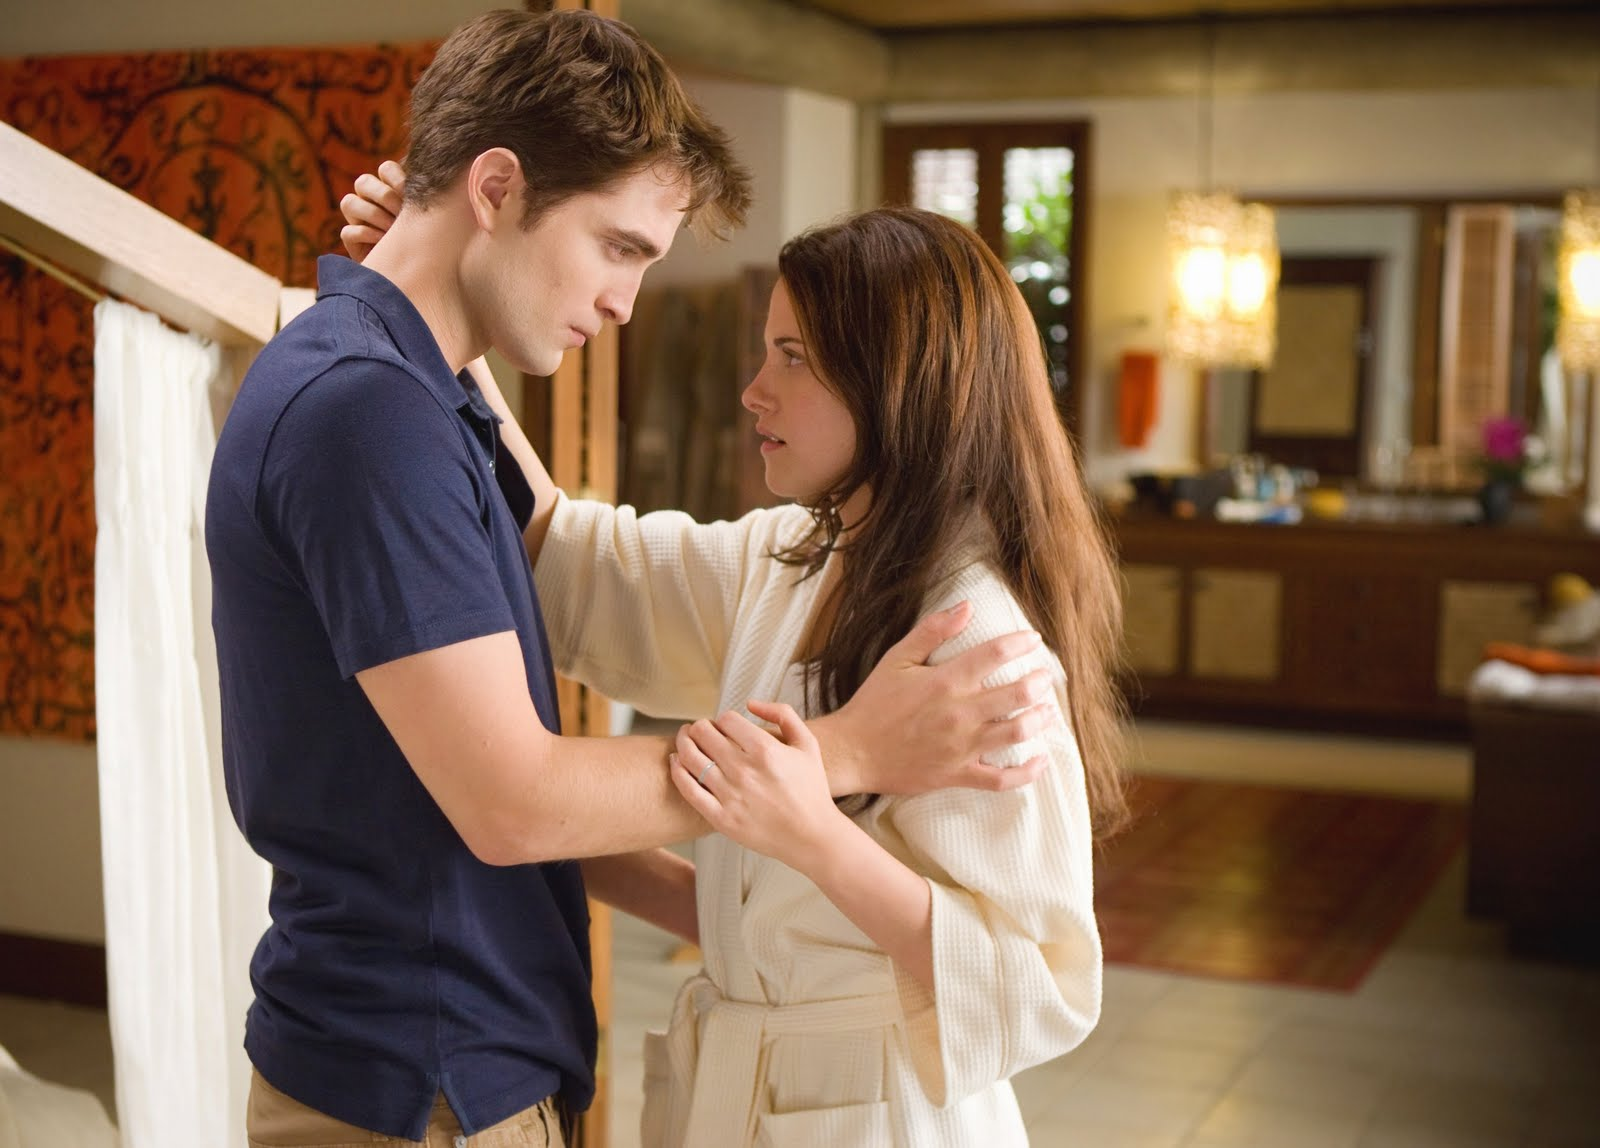 http://4.bp.blogspot.com/-AFmJi_l4y44/TmqsKl0N44I/AAAAAAAAABs/L31RjbvSW2c/s1600/twilight-breaking-dawn-robert-pattinson-and-kristen-stewart.jpg